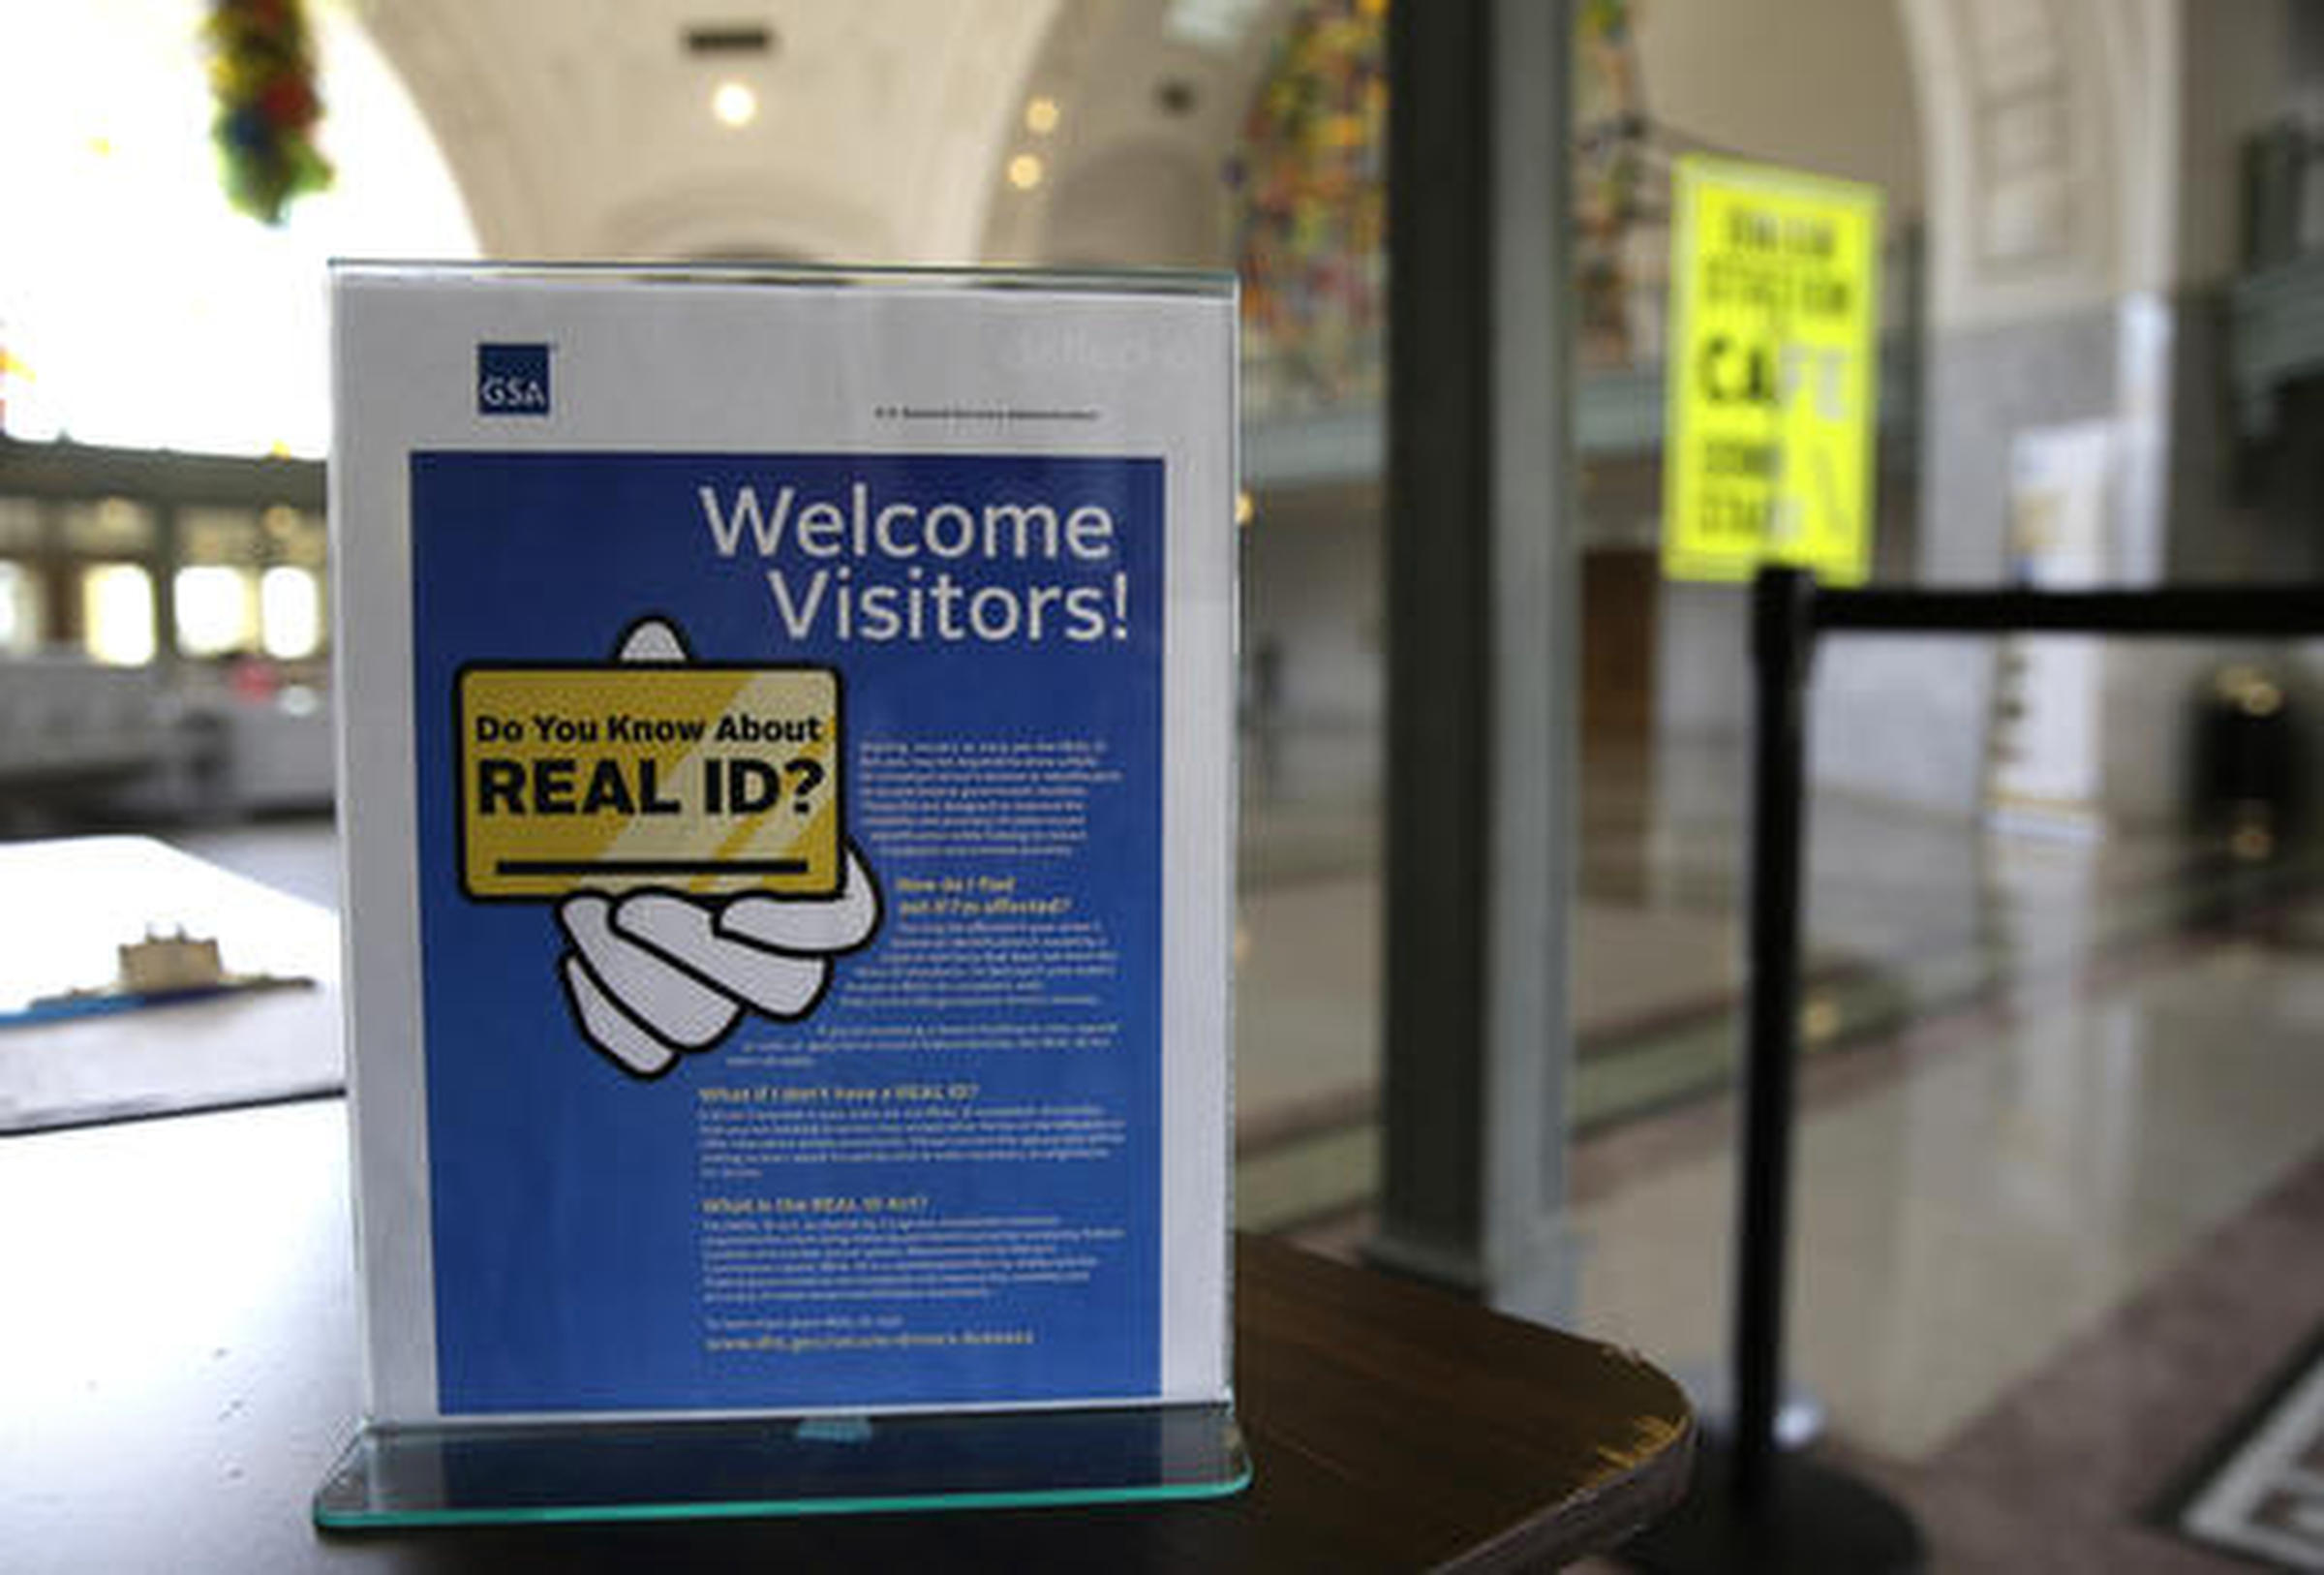 Pa. House passes Real ID bill, Governor Wolf says he'll sign it